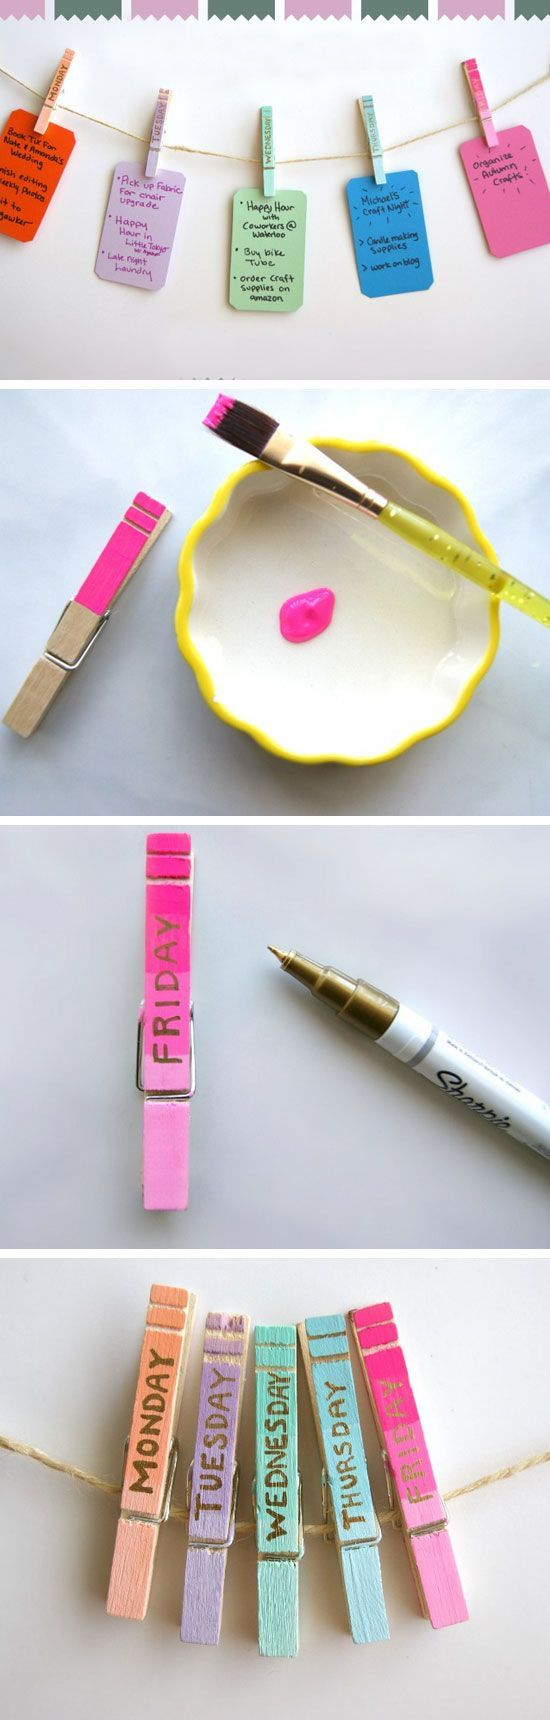 Clothespin Daily Organizers | 23 Life Hacks Every Girl Should Know | Easy Organi...